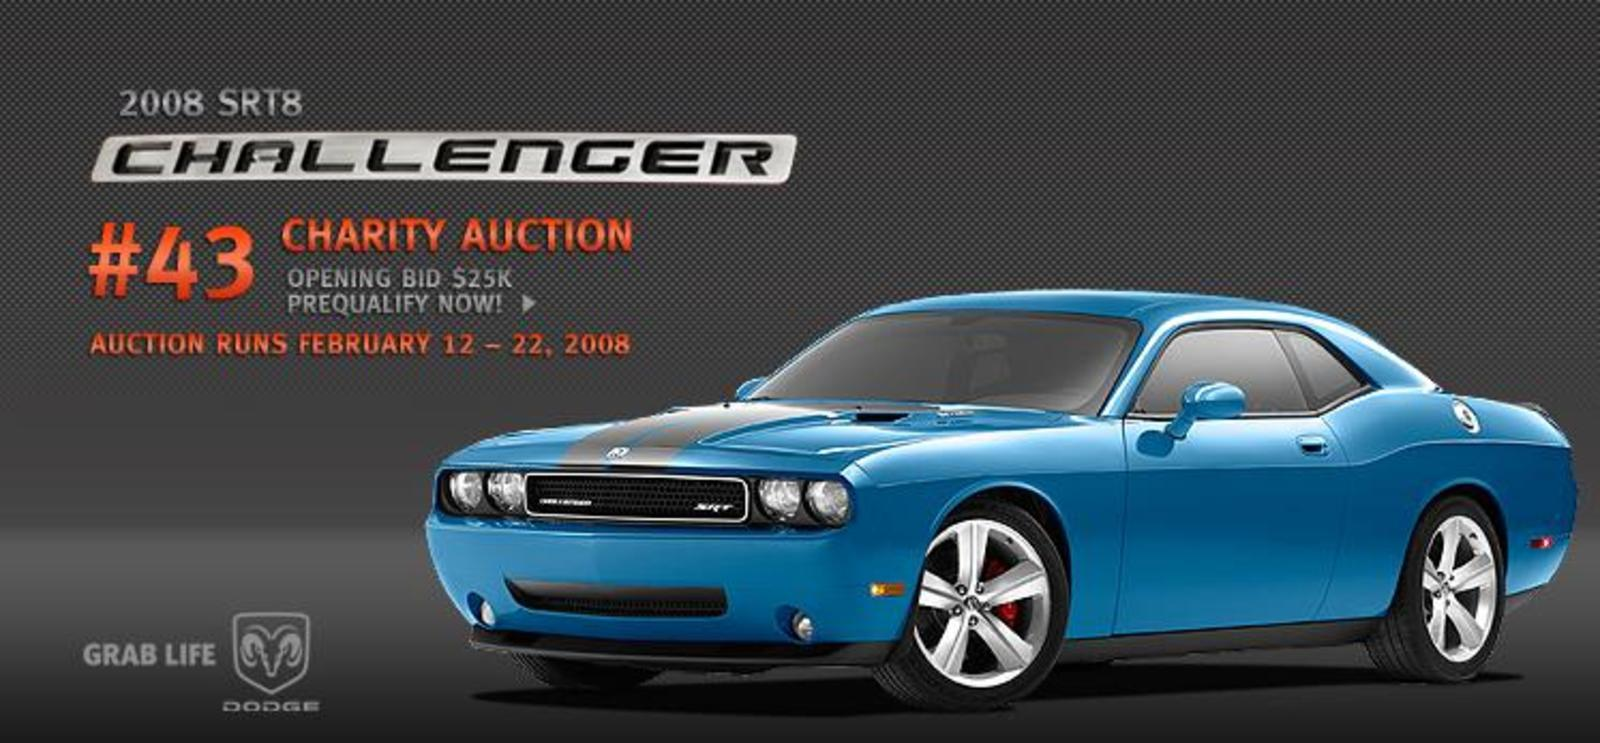 B5 Blue Challenger Srt8 Auctioned For Charity News Top Speed